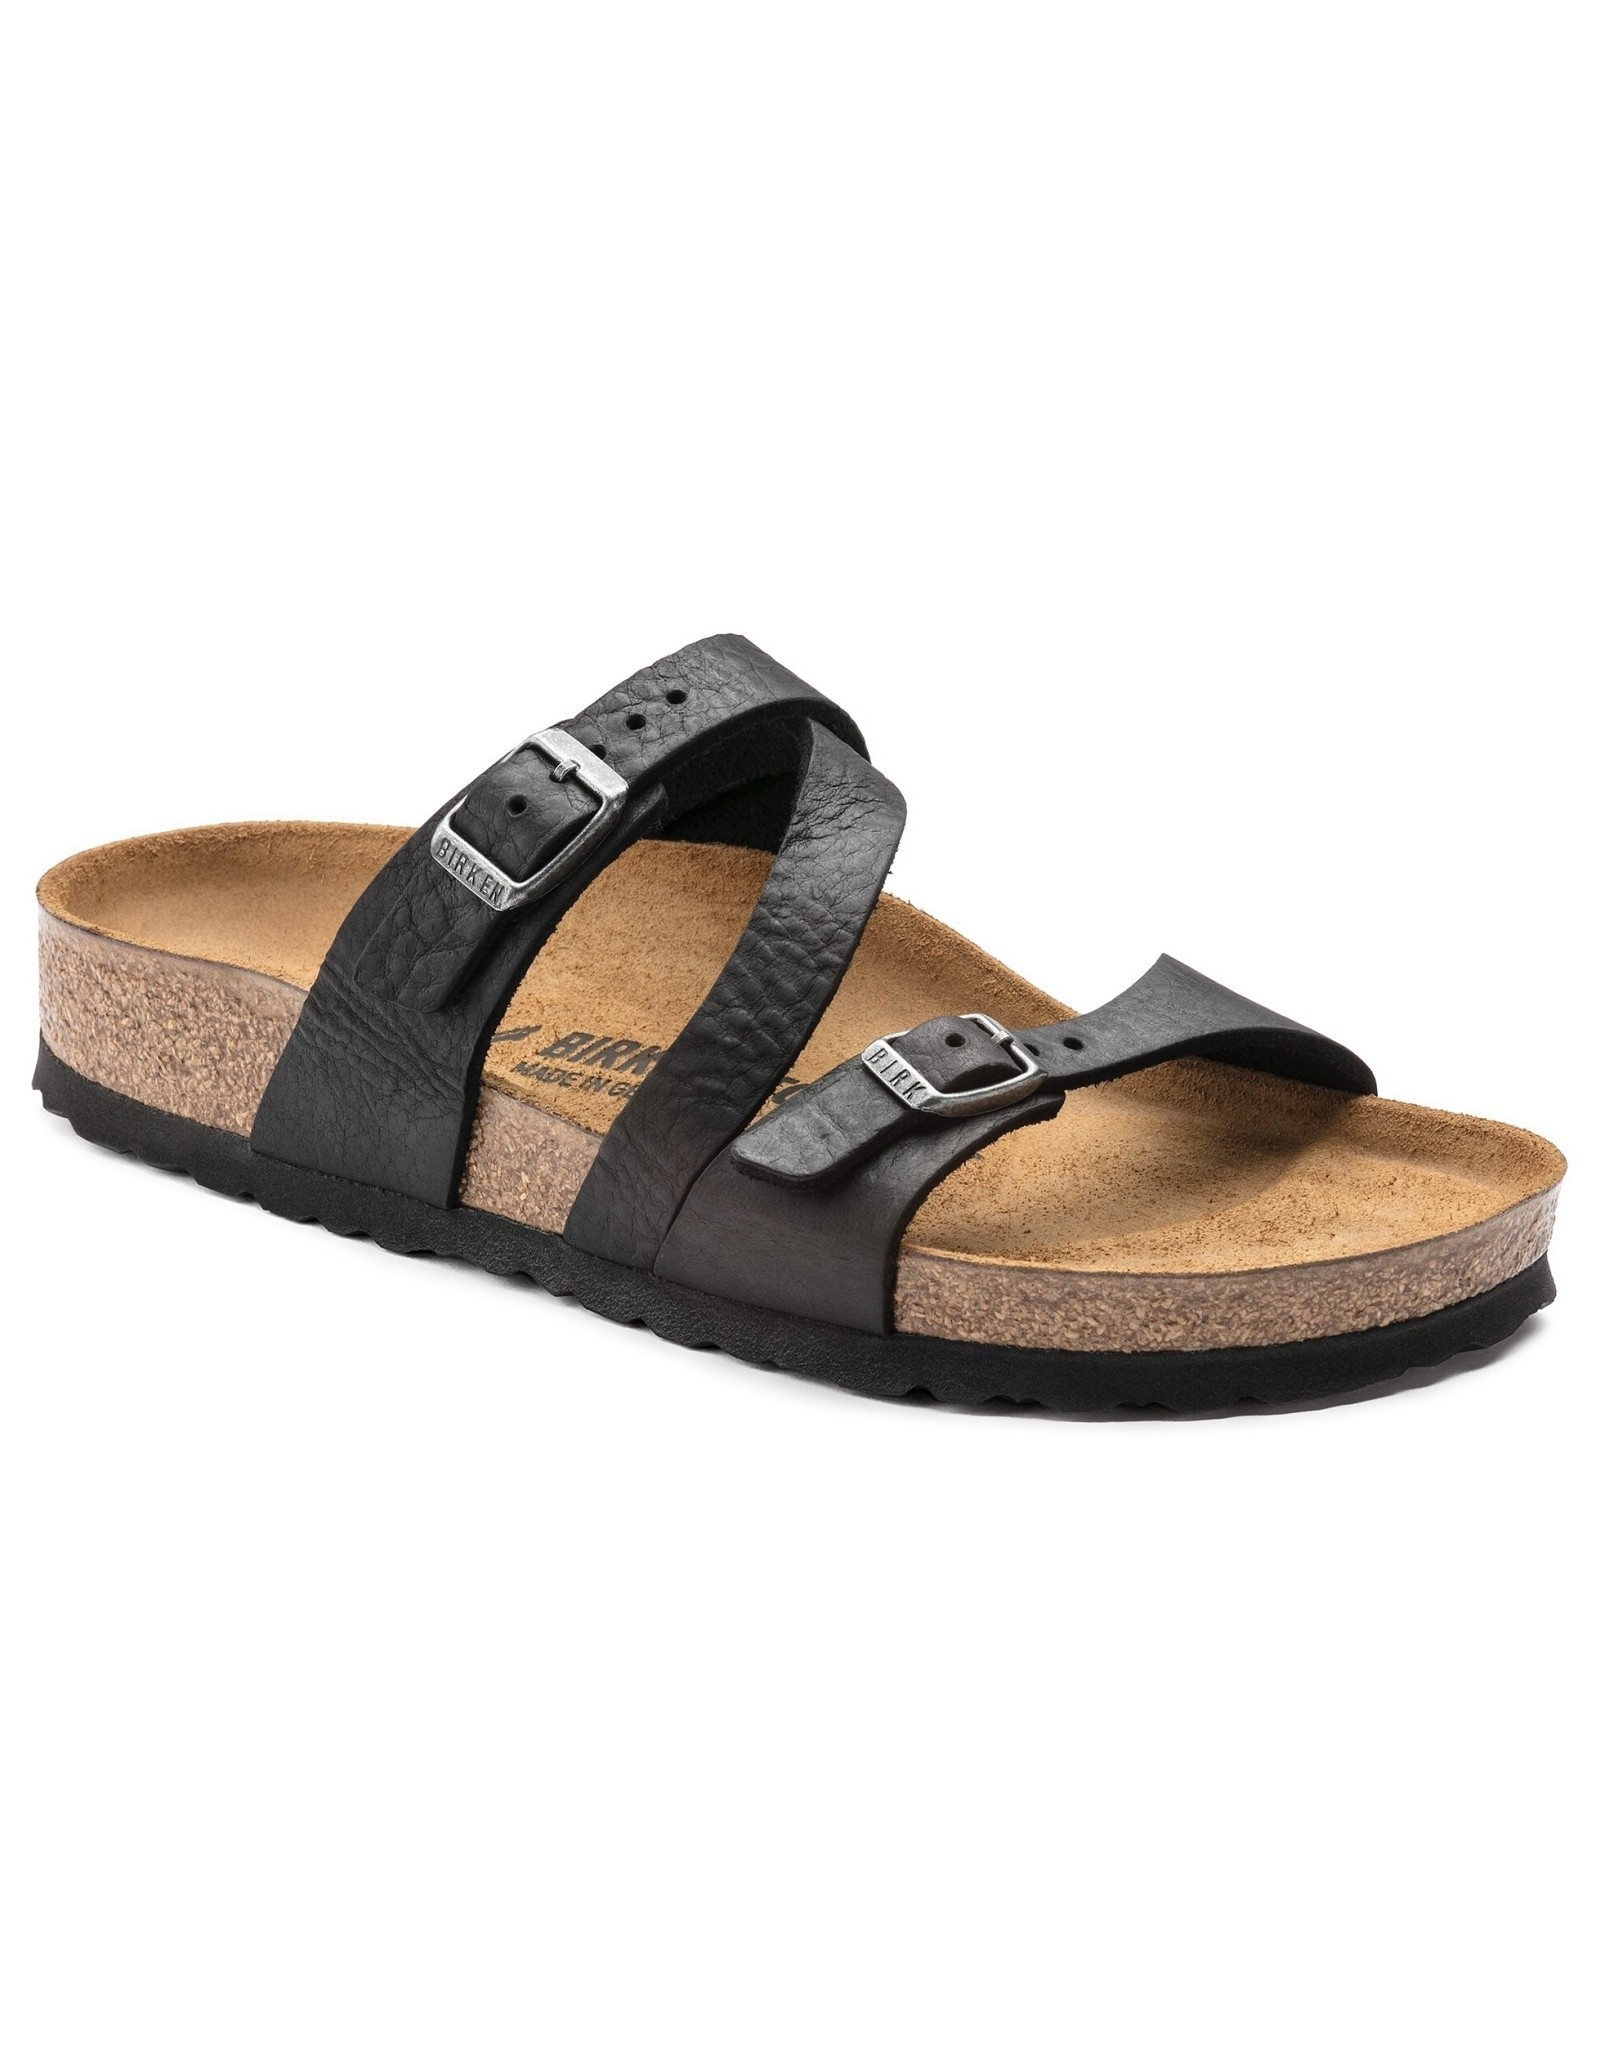 Birkenstock Available In Store ONLY- Birkenstock Salina BS Ladies'